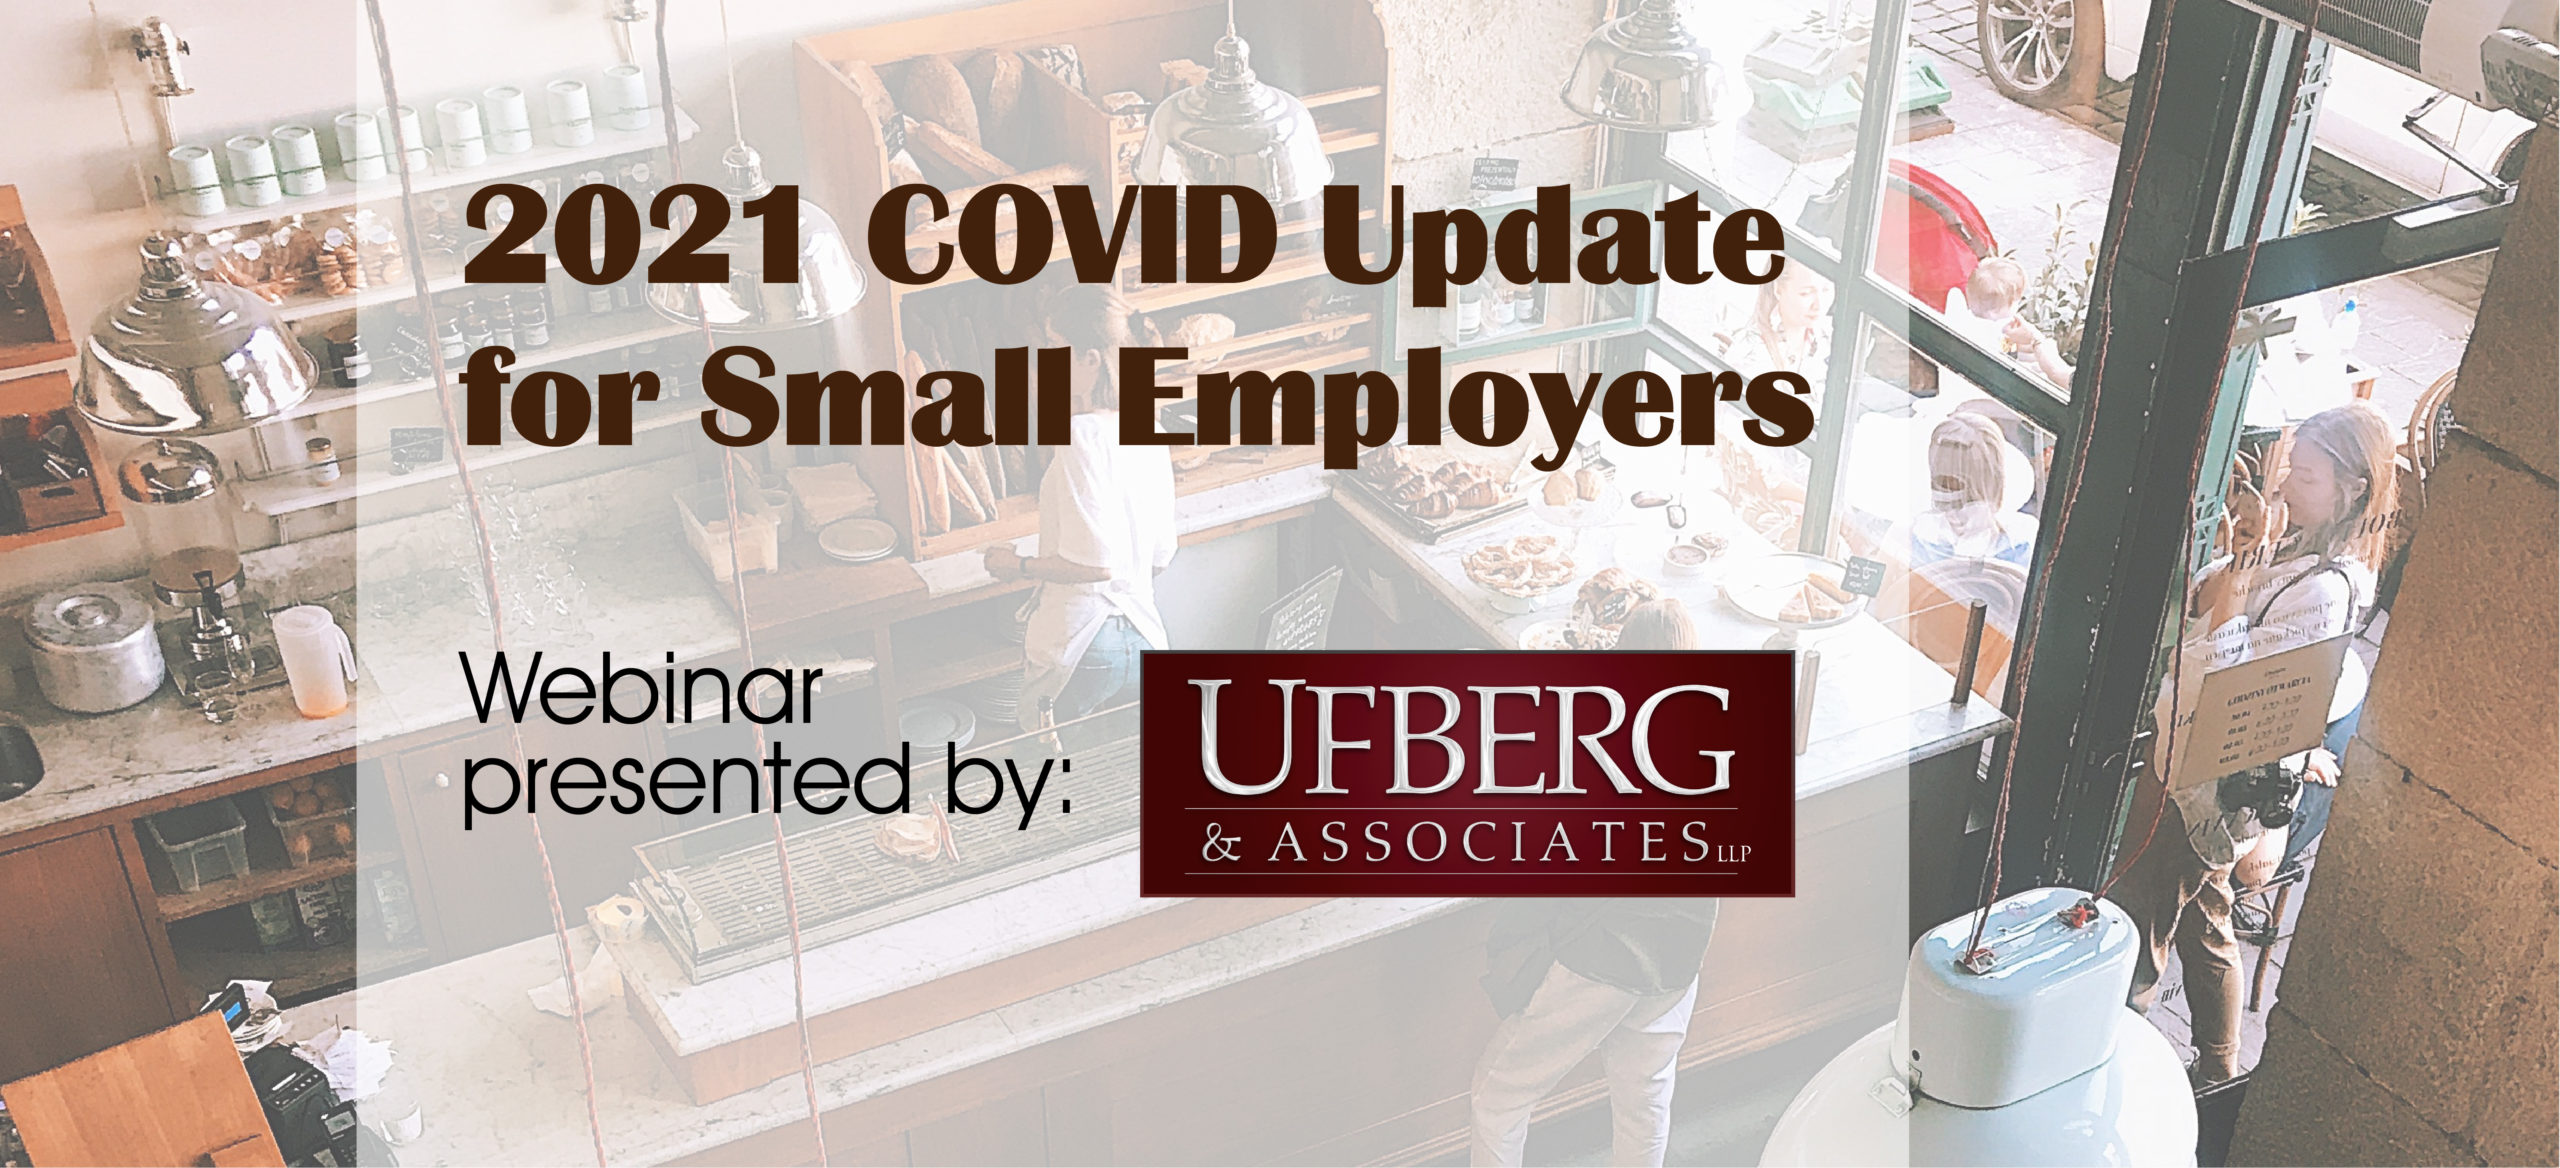 2021 COVID Update for Small Employers